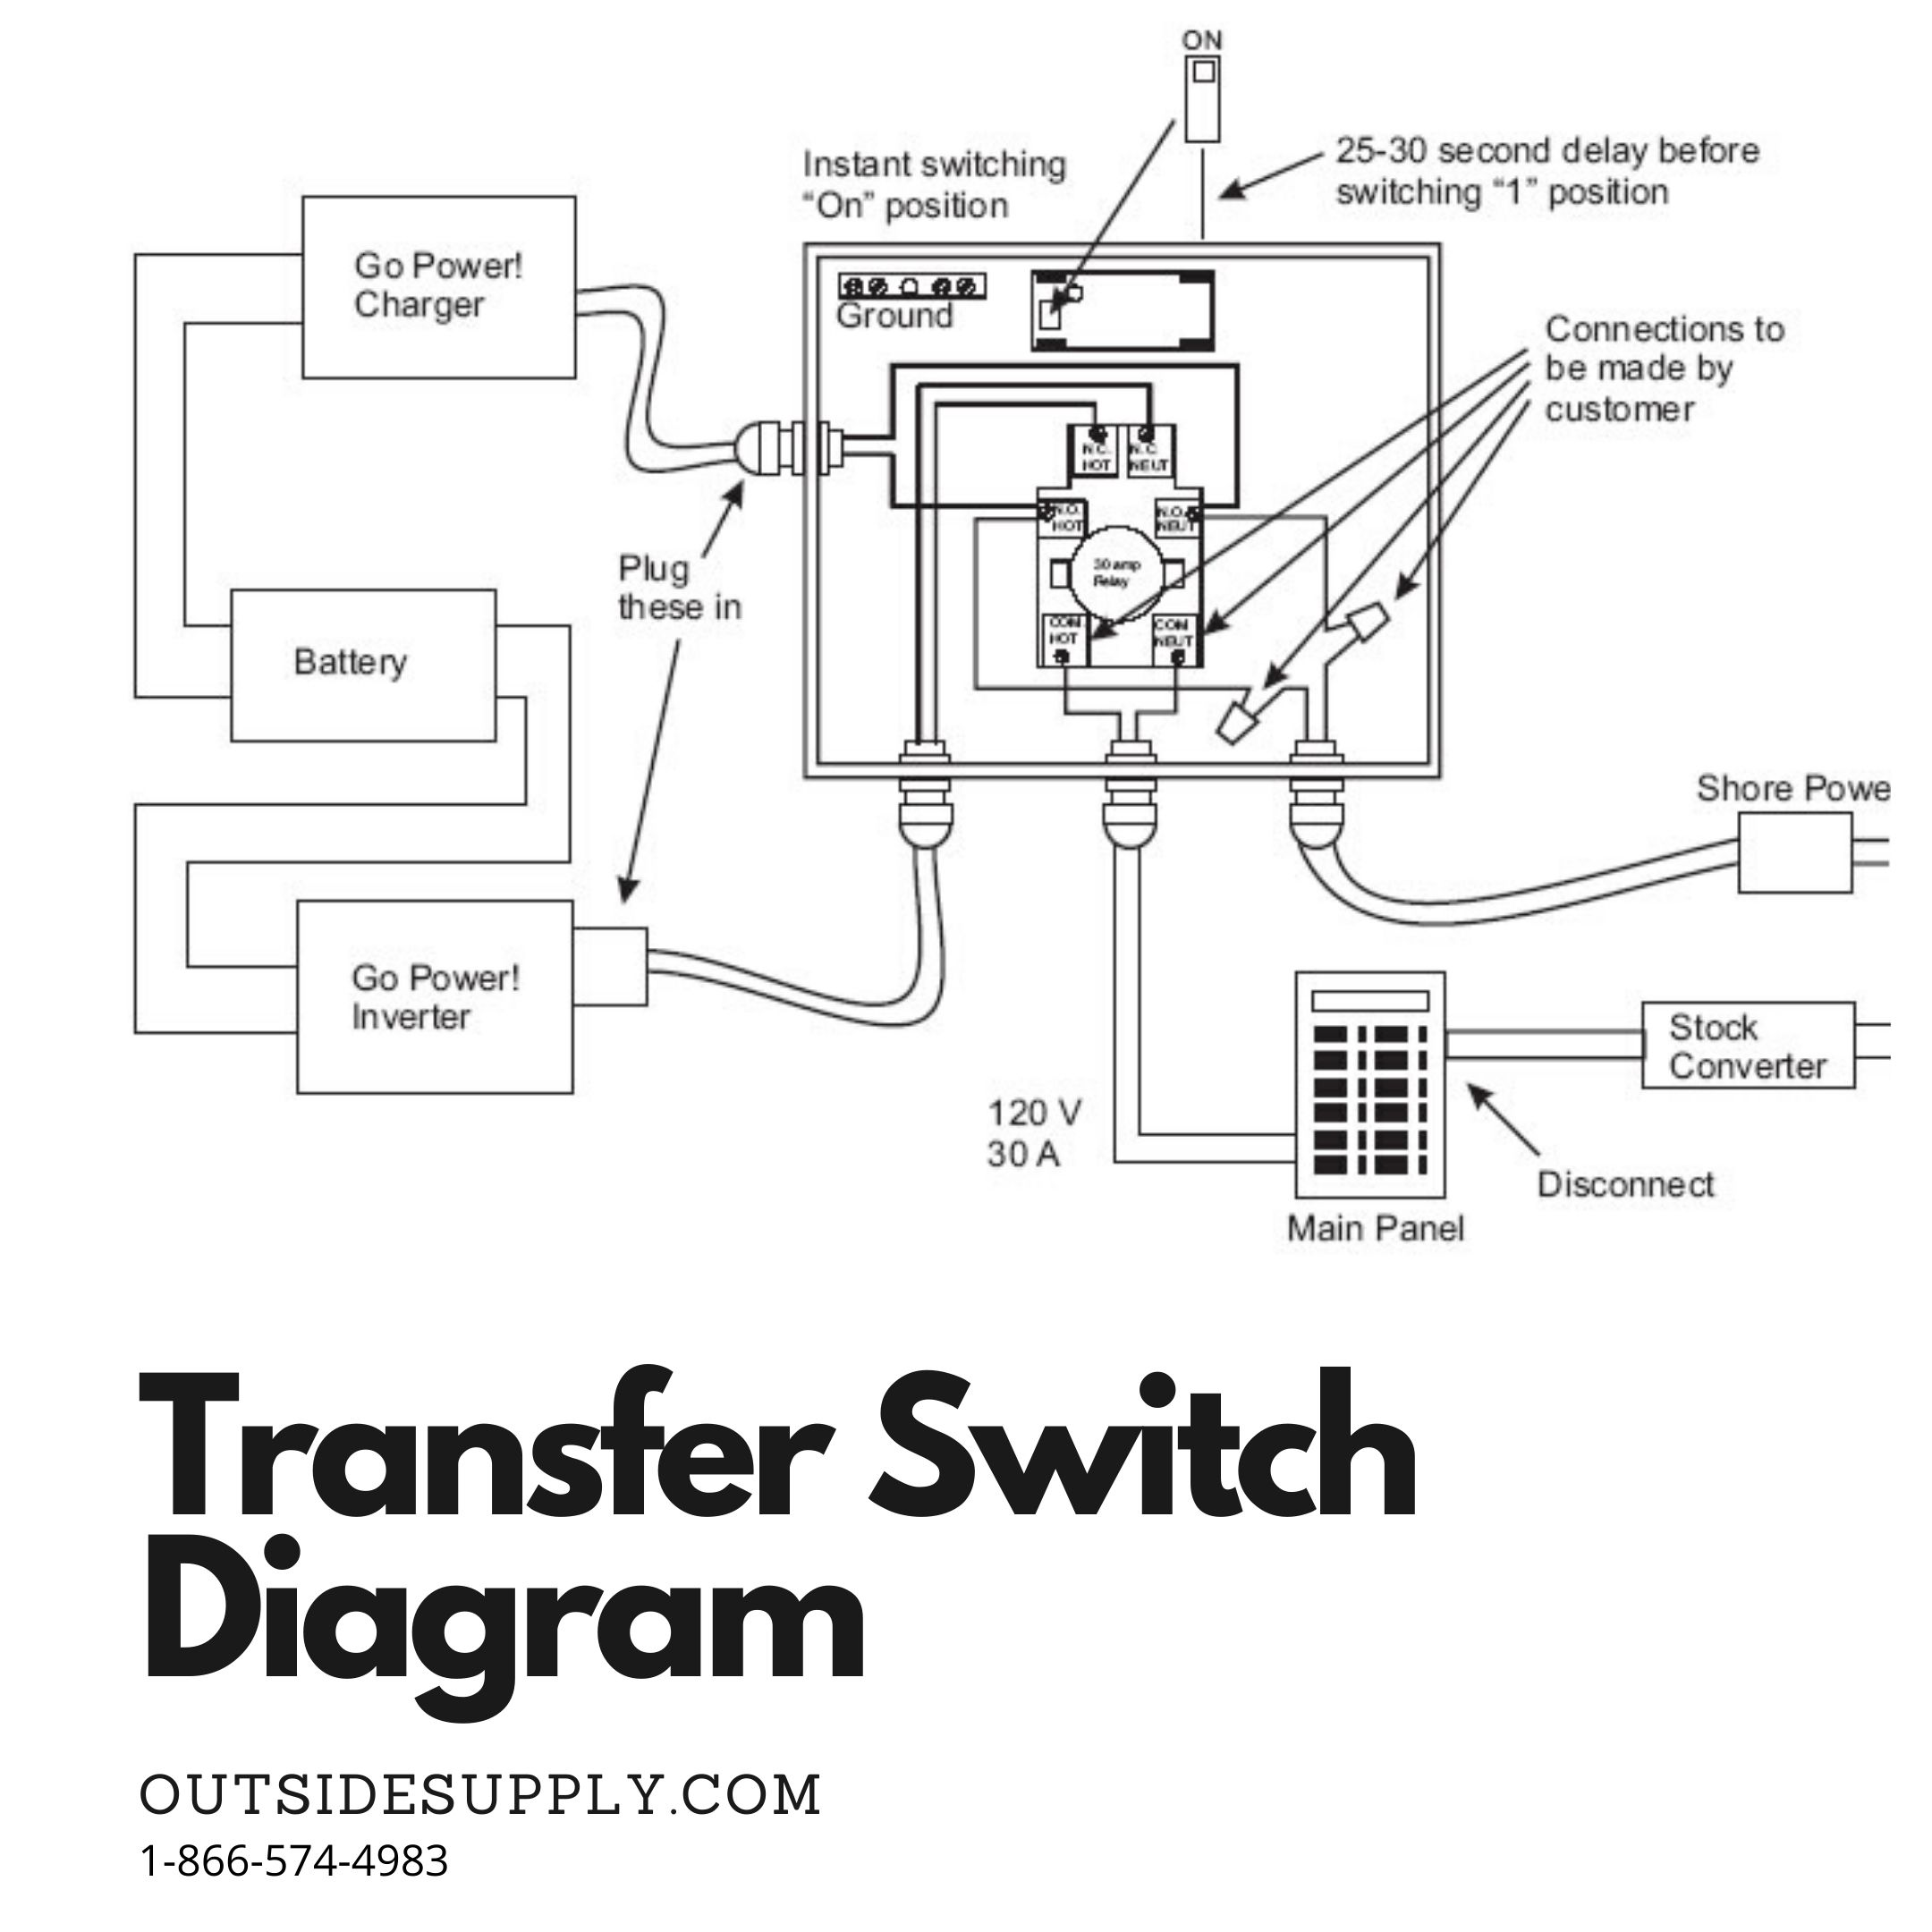 transfer switch wiring_diagram go power 30 amp transfer switch residential transfer switch wiring diagram at readyjetset.co